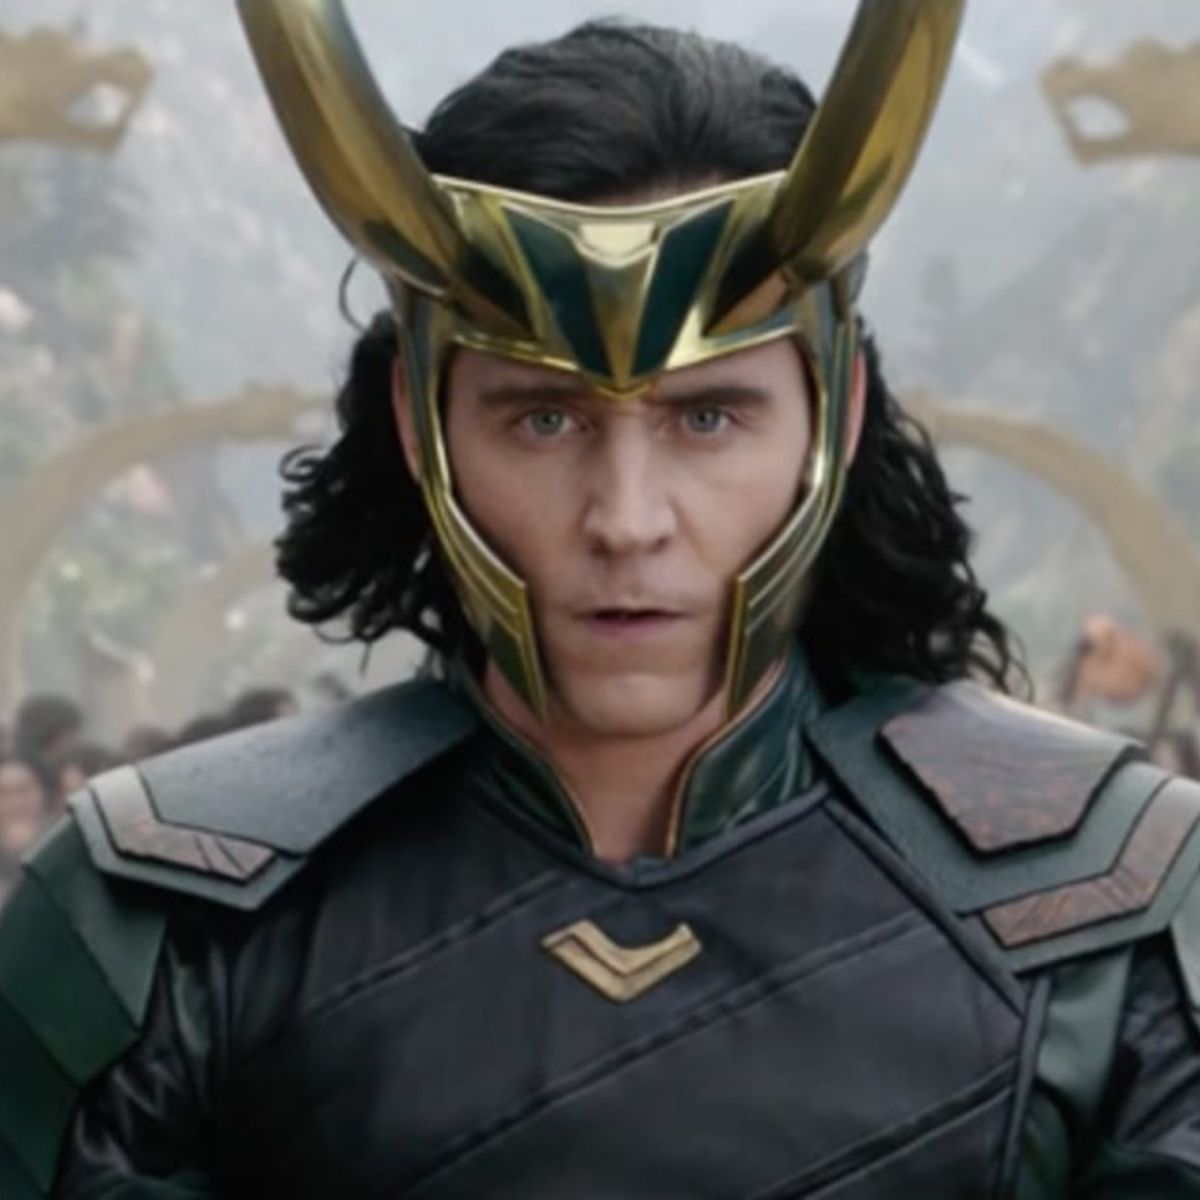 Loki, Scarlet Witch and More Are Getting Shows on Disney Streaming Service